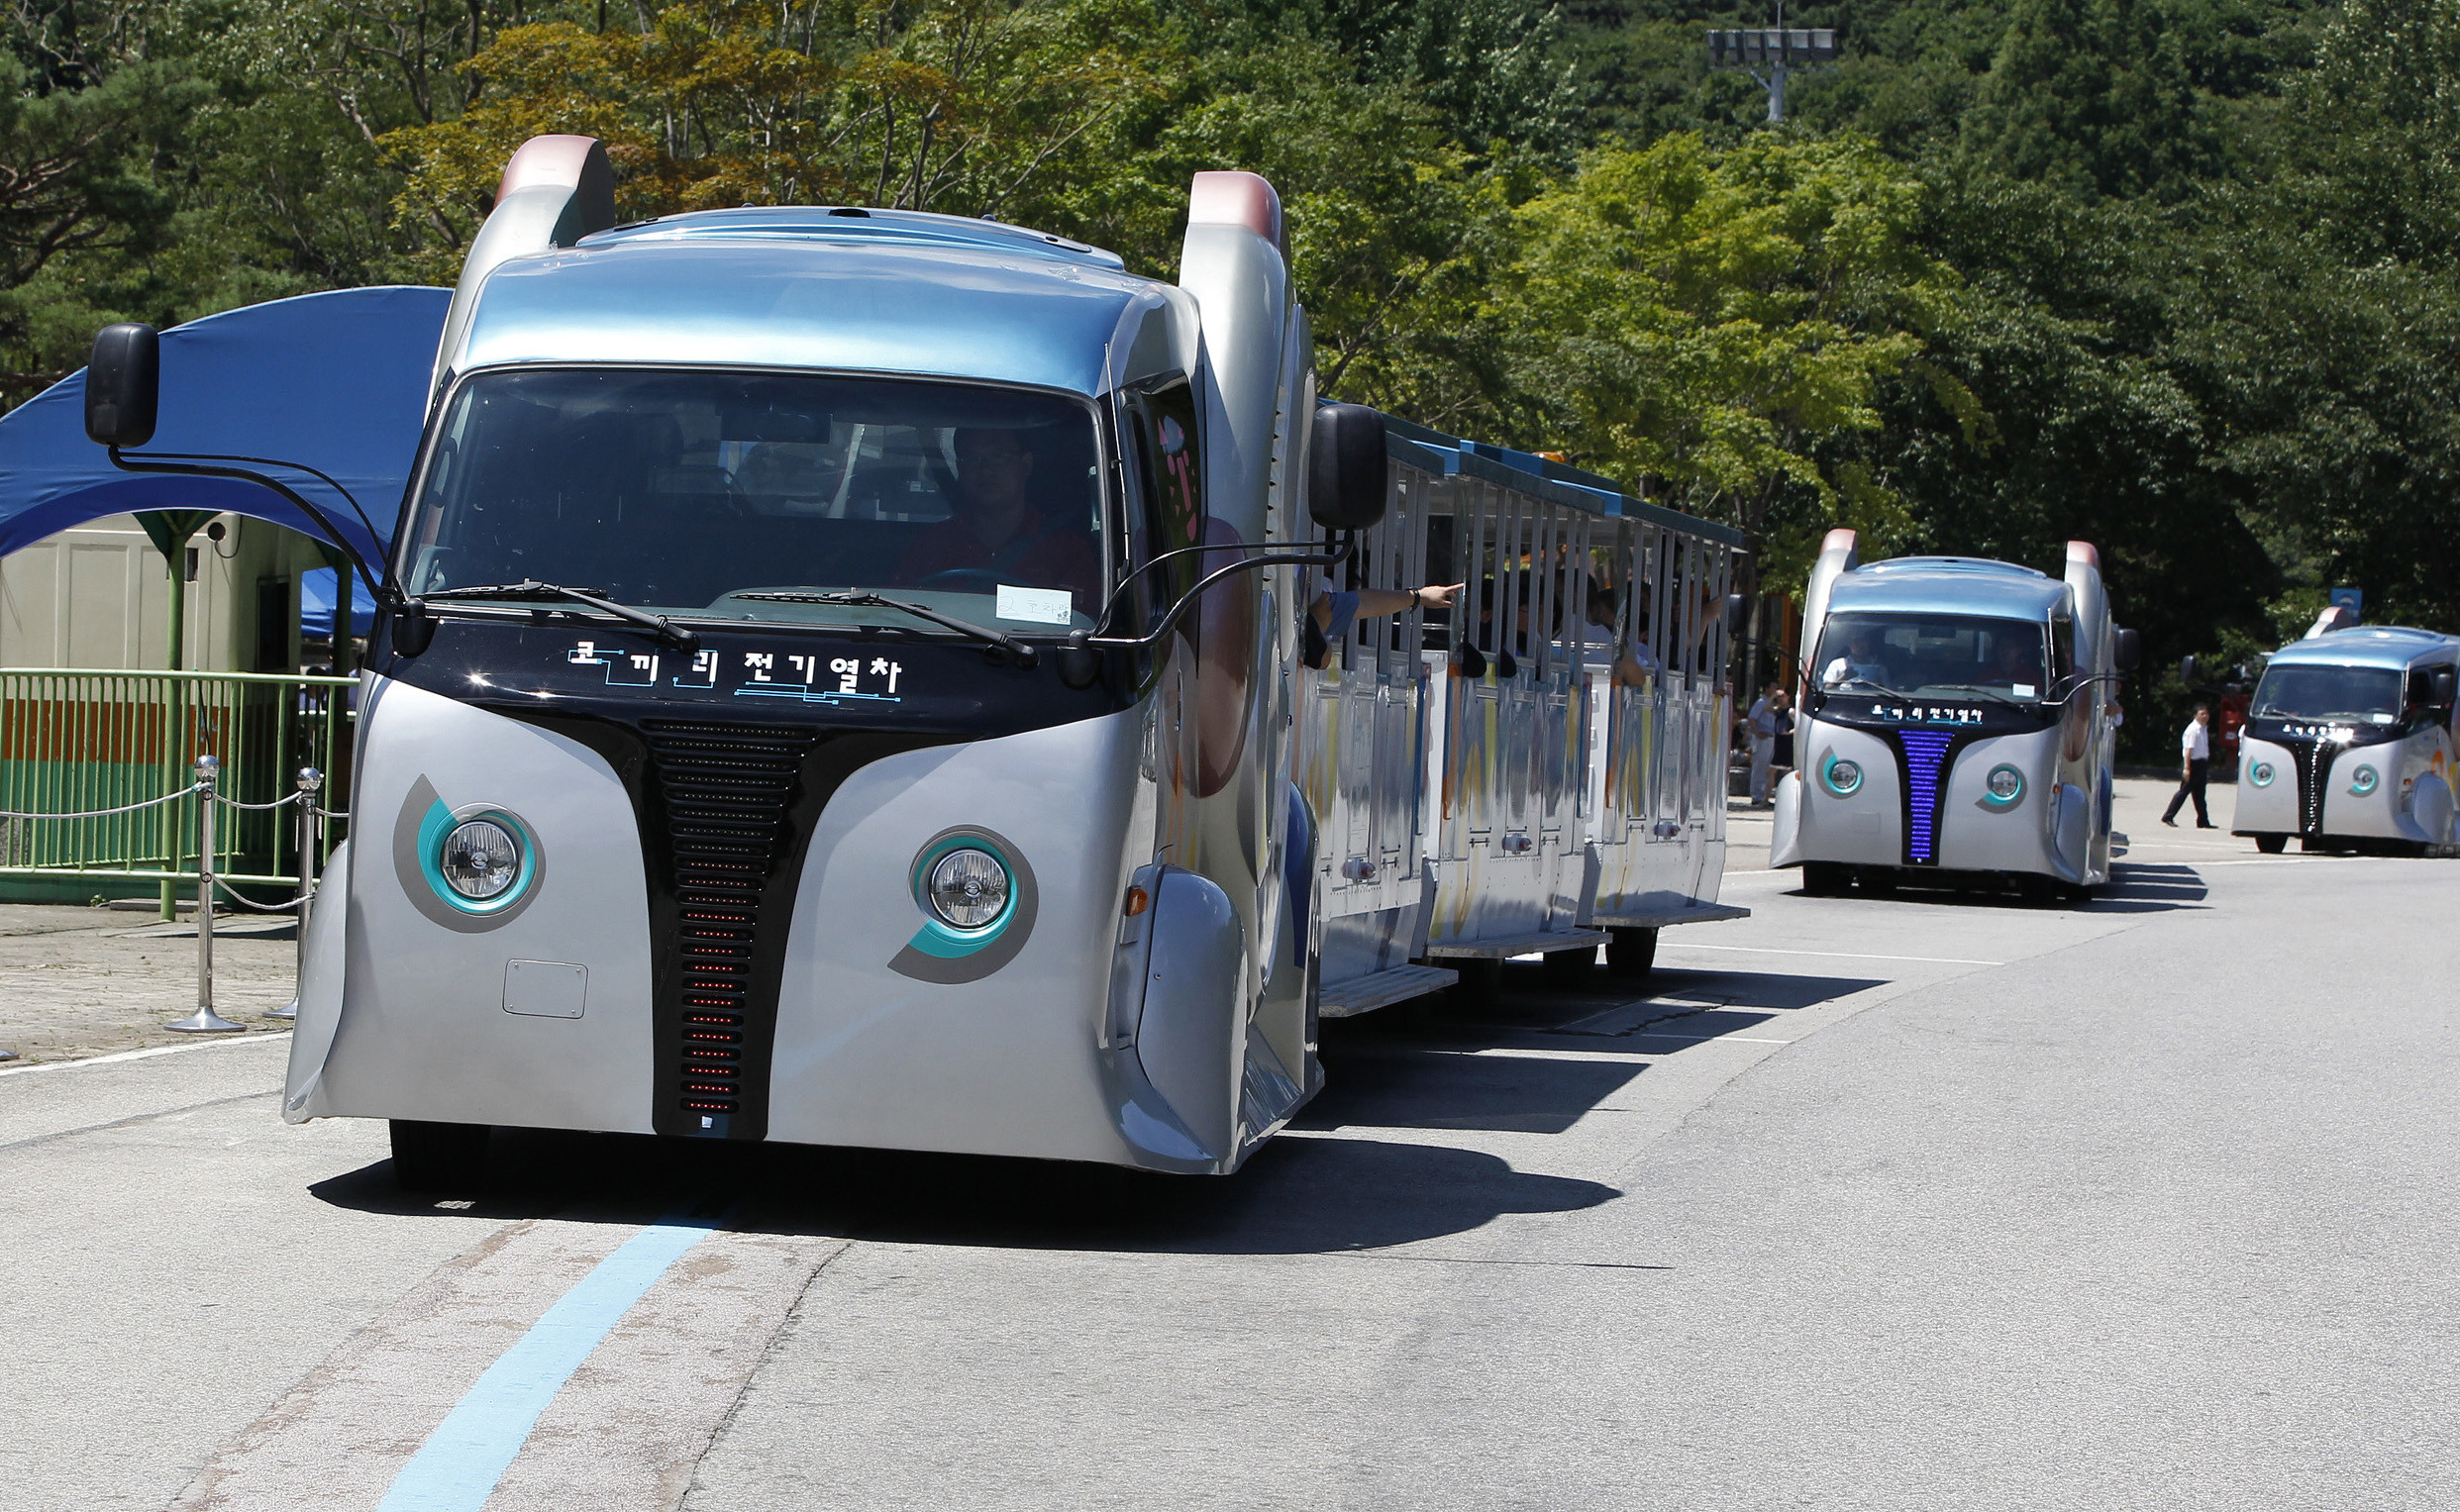 Wireless electric trams move on a road embedded with a power strip after their launch ceremony at Seoul Grand Park in Gwacheon, south of Seoul, July 19, 2011. The Seoul Metropolitan Government and the Korea Advanced Institute of Science and Technology (KAIST) manufactured the tram using a new technology called the On-Line Electric Vehicle (OLEV) system which is remotely charged via electromagnetic fields created by electric cables buried beneath the road. Seoul Grand Park started to run three new wireless electric trams which consume no fossil fuels and do not require any overhead wires or cables. They replaced old diesel-powered carts, local media reported on Tuesday.